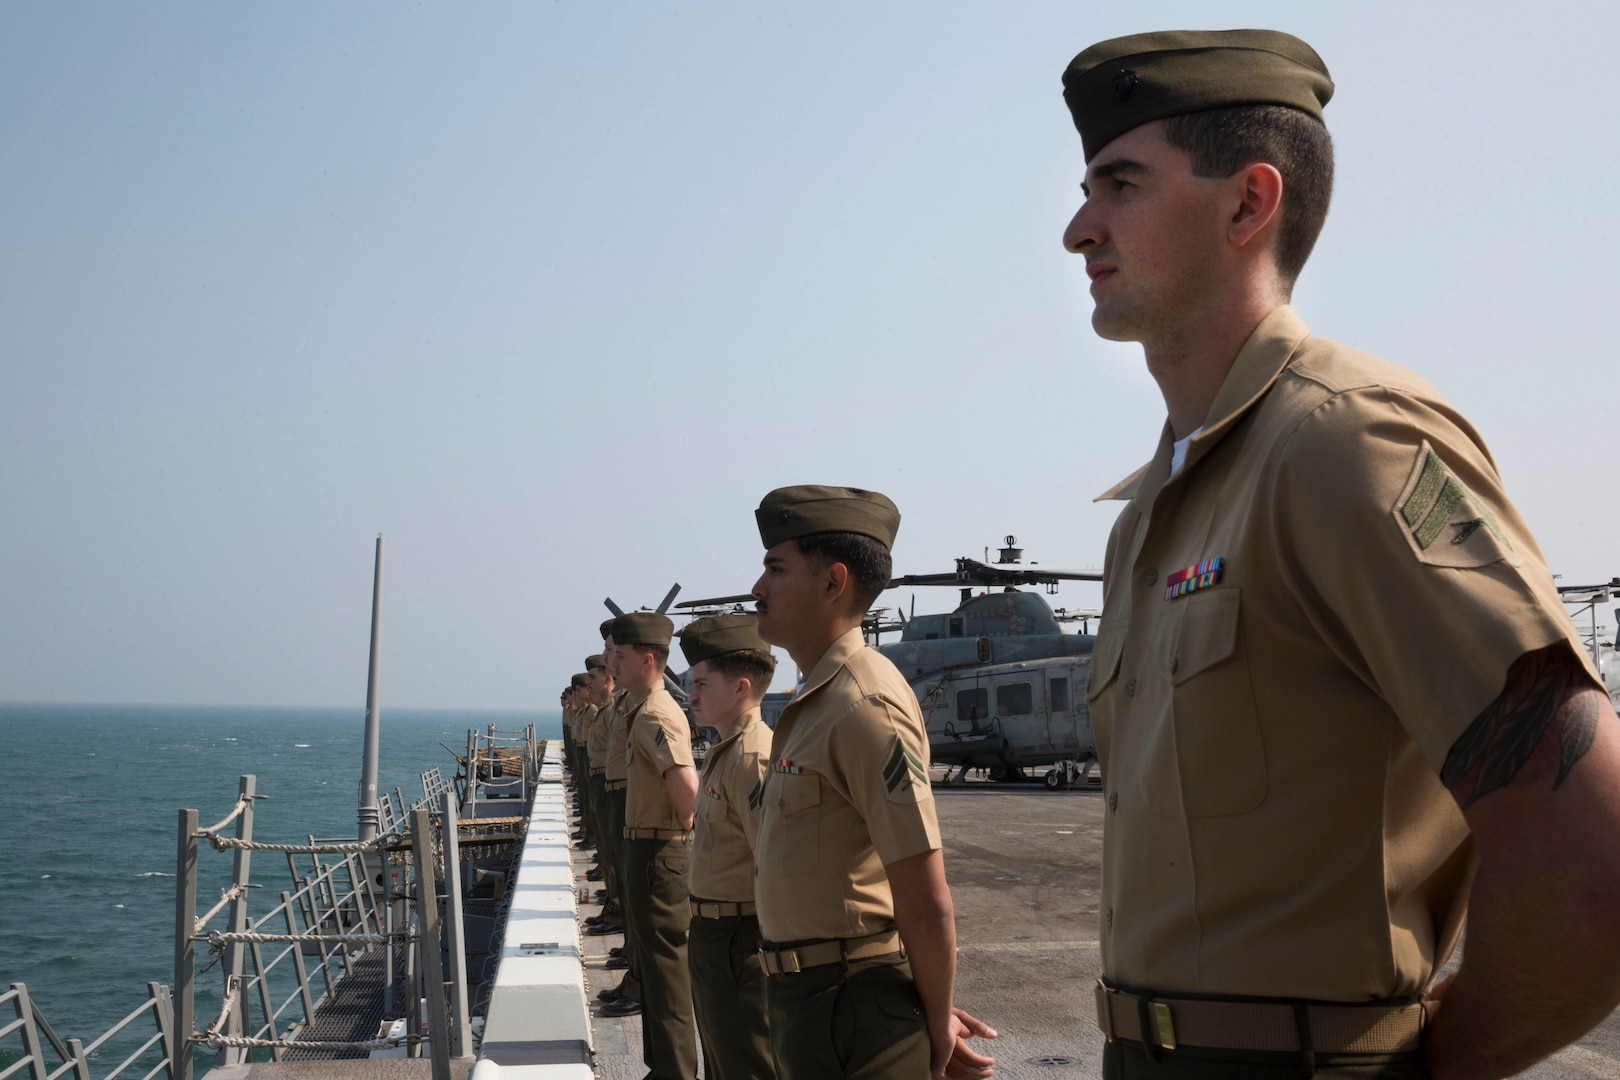 U.S. Marines with the 13th Marine Expeditionary Unit (MEU), man the rails of the San Antonio-class amphibious transport dock USS Anchorage (LPD 23), Dec. 22, 2018. The Anchorage, assigned to the Essex Amphibious Ready Group (ARG), is conducting a partnership strengthening visit to Visakhapatnam, India.  The Essex ARG and 13th MEU are a capable and lethal Navy-Marine Corps team deployed to the U.S. 7th Fleet area of operations to support regional stability, reassure partners and allies and maintain a presence postured to respond to any crisis ranging from humanitarian assistance to contingency operations.